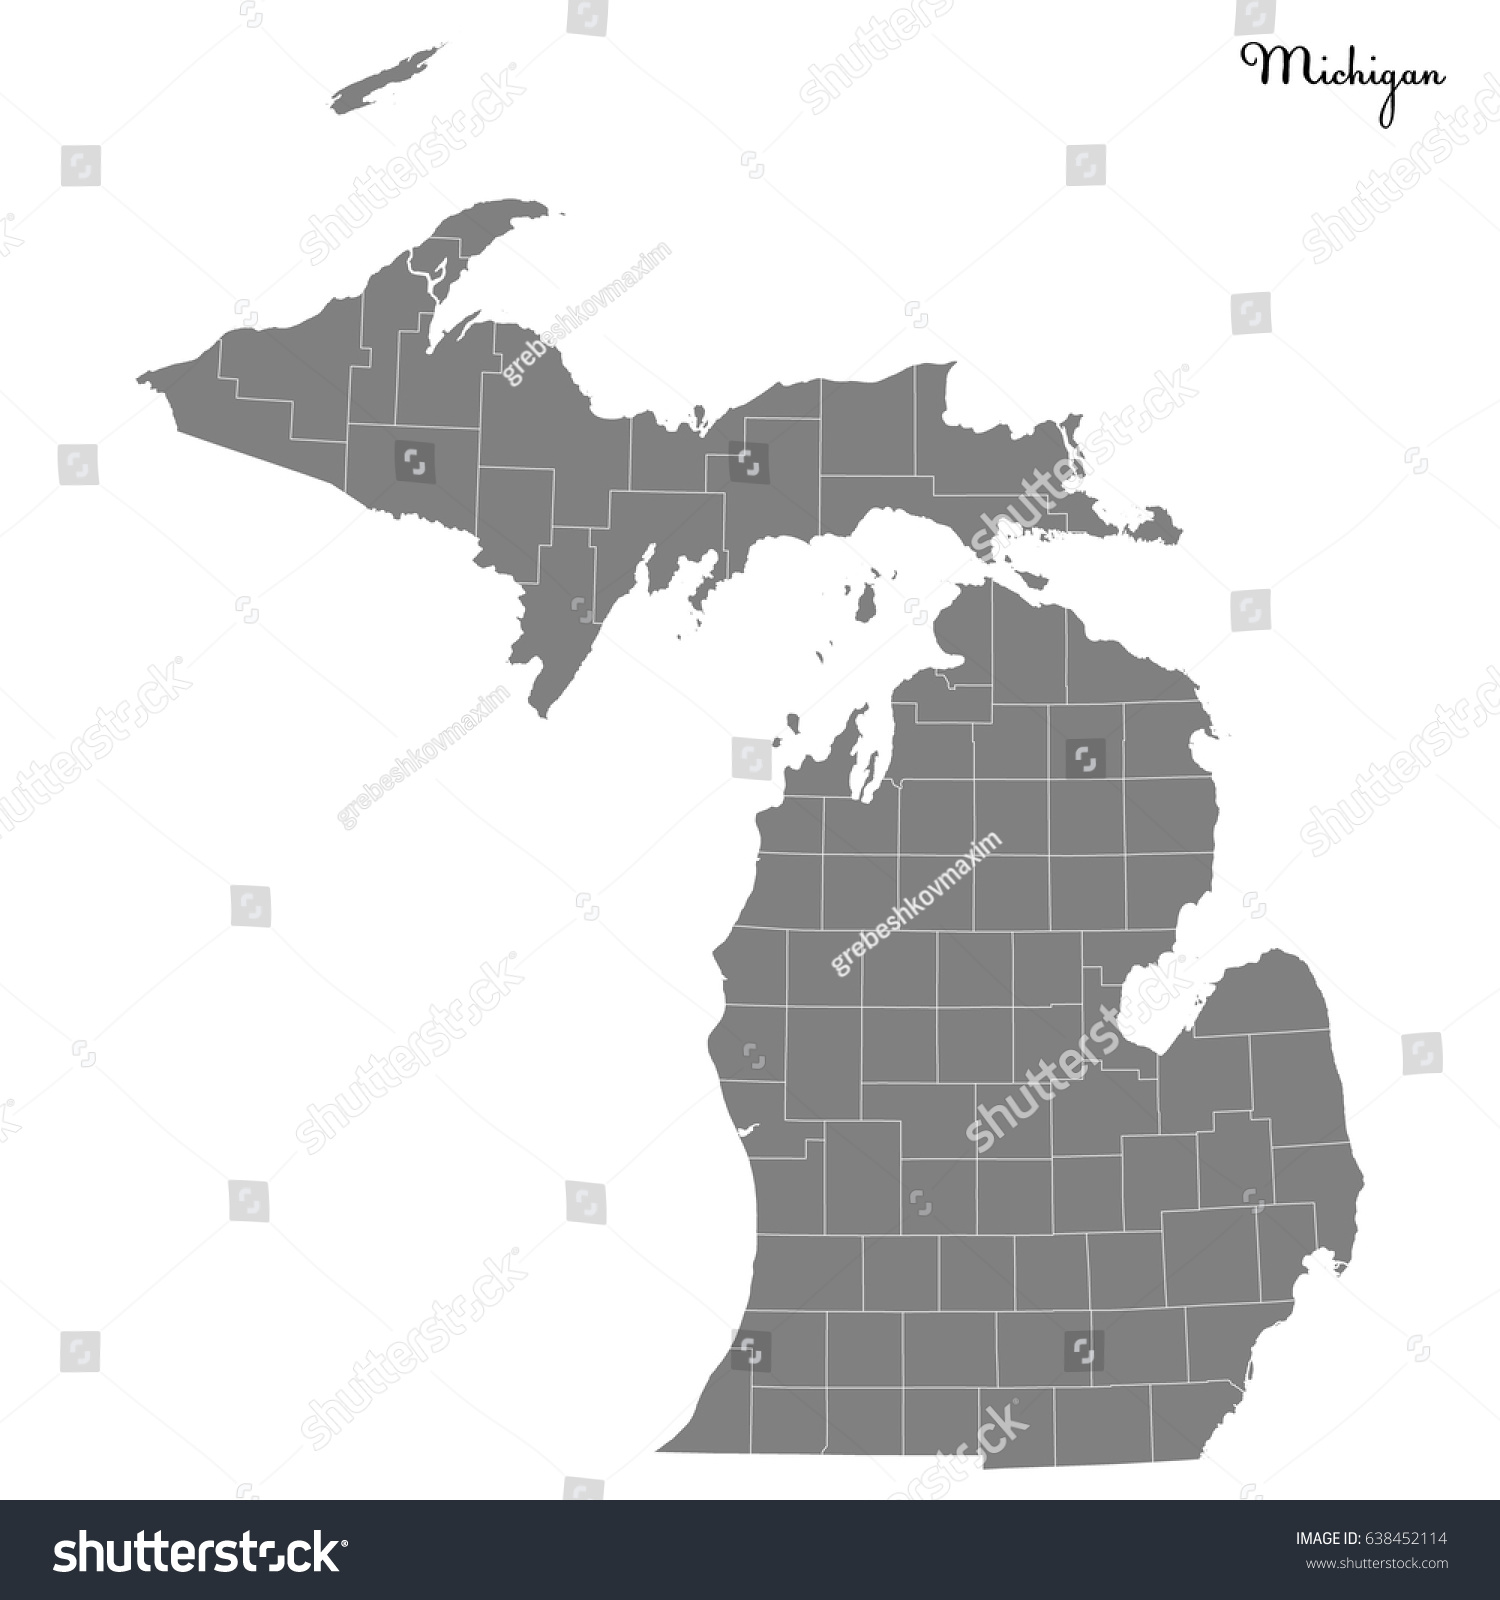 High Quality Map Us State Michigan Stock Vector - State of state of michigan on a us map